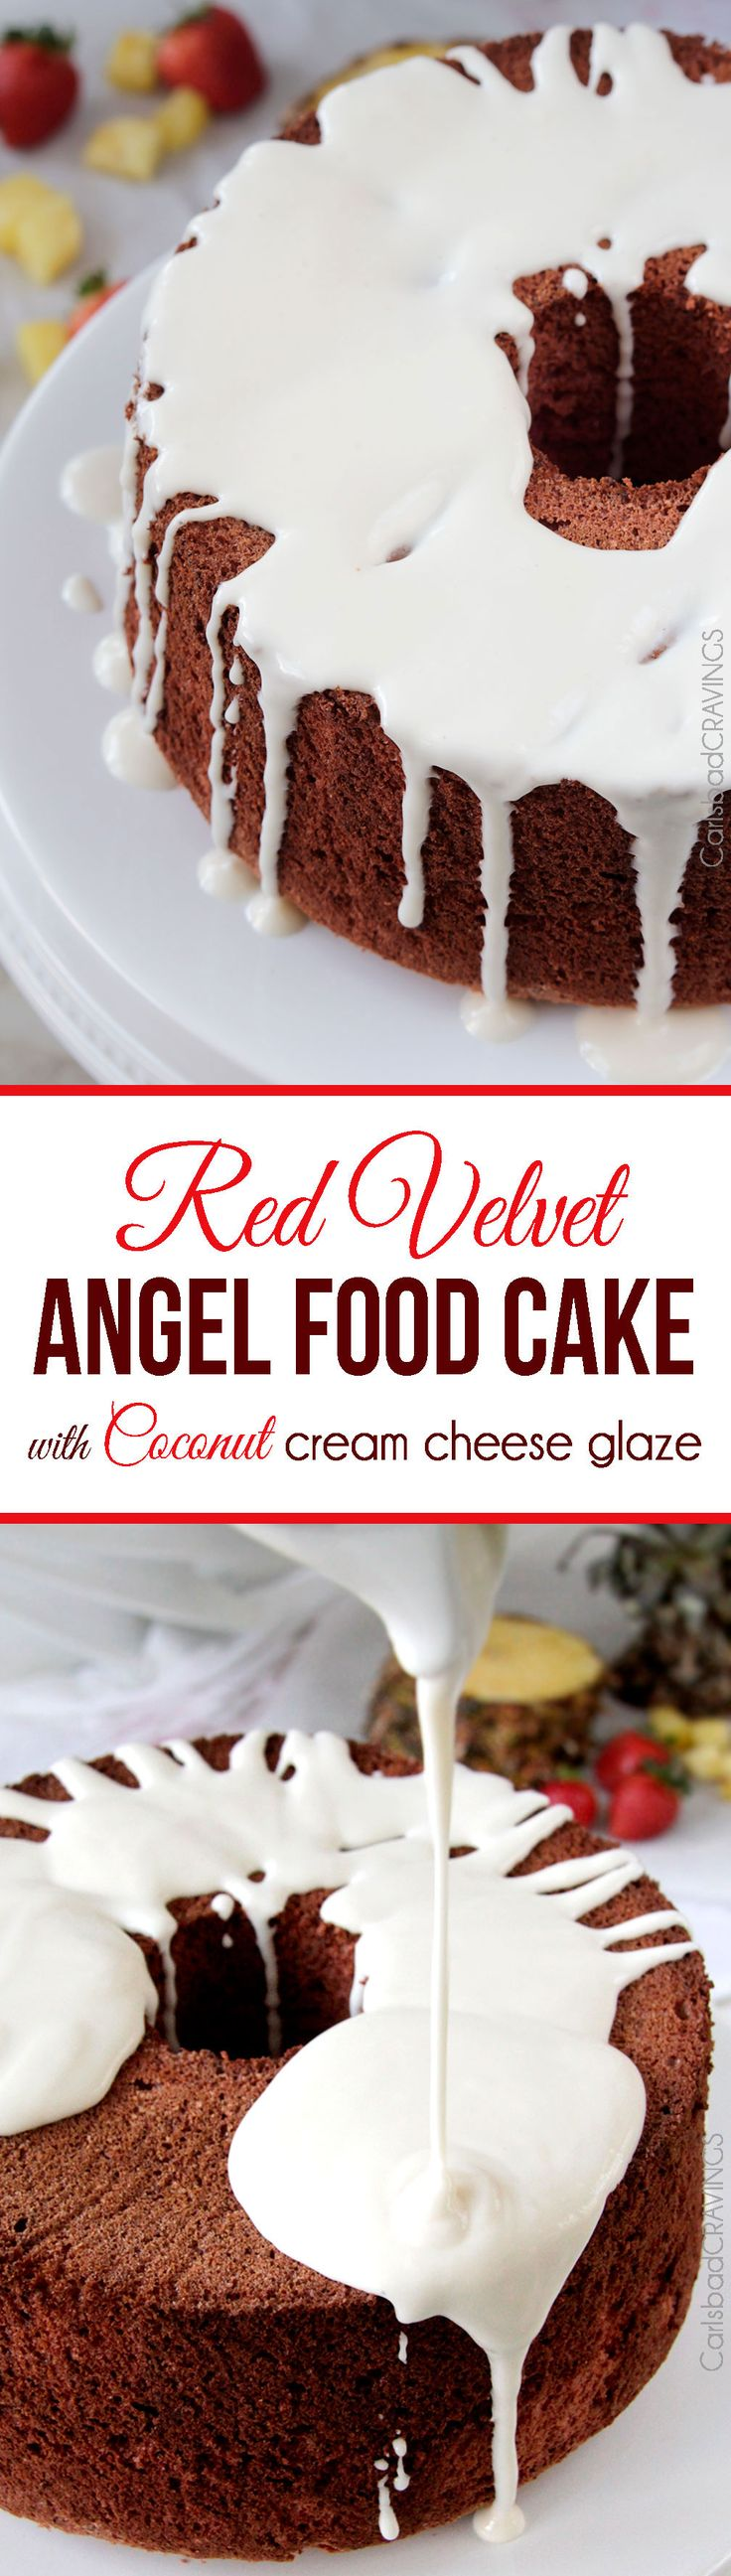 EASY light airy Red Velvet Angel Food Cake with INCREDIBLE Coconut Cream Cheese Glaze: This cake looks fancy (perfect for company or special occasions) but takes less than 20 minutes to make!